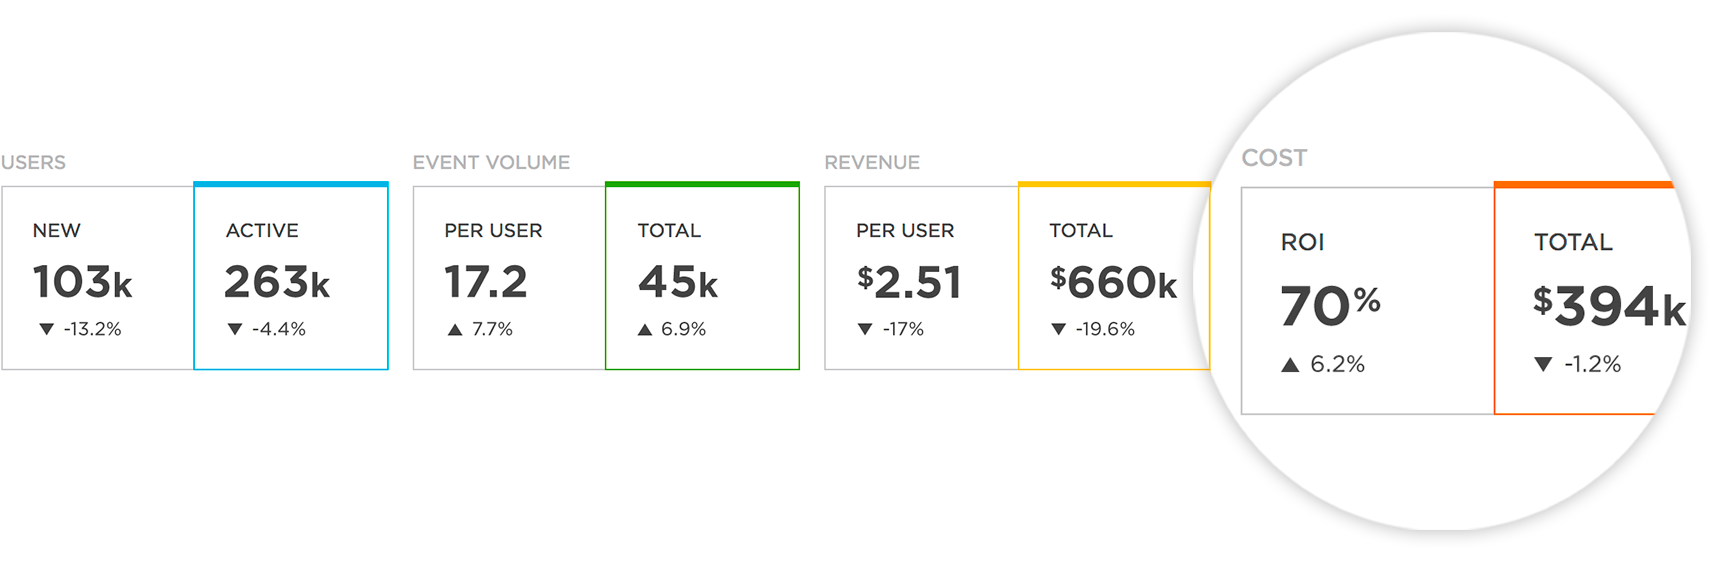 Segment of data showing cost and ROI numbers alongside numbers of users, event volume, and revenue.